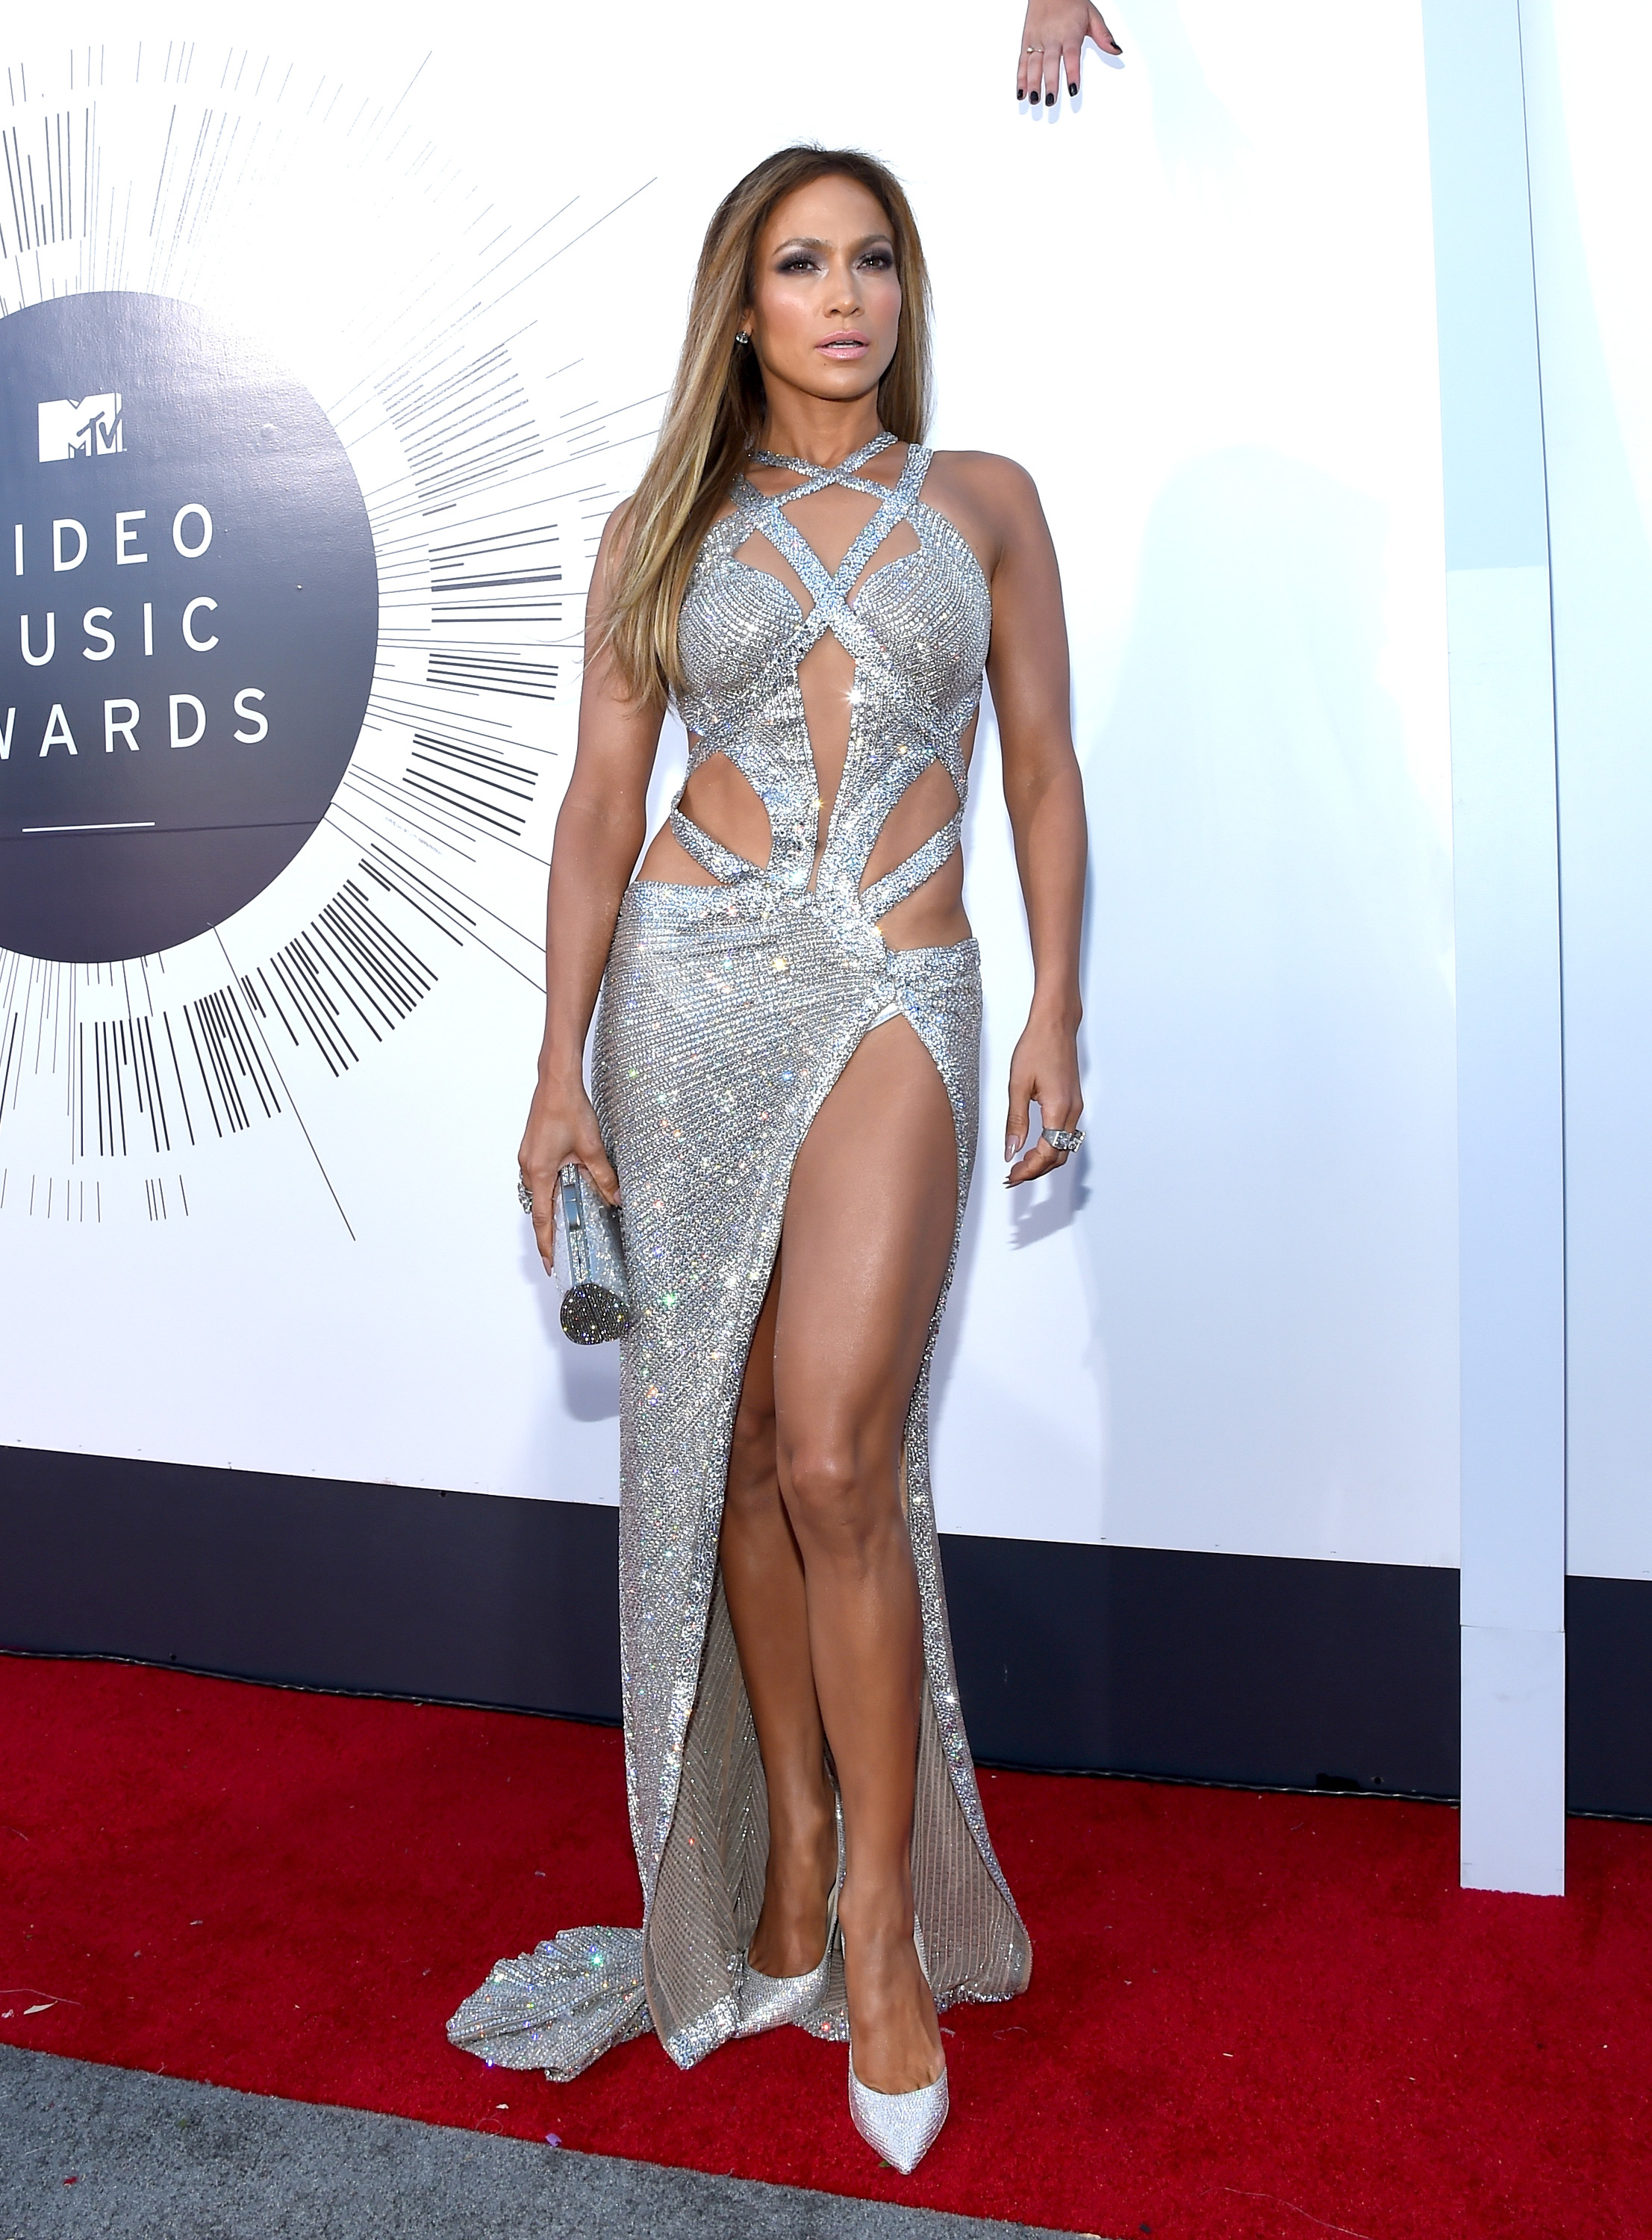 Jennifer Lopez attends the 2014 MTV Video Music Awards at The Forum on August 24, 2014 in Inglewood, California.